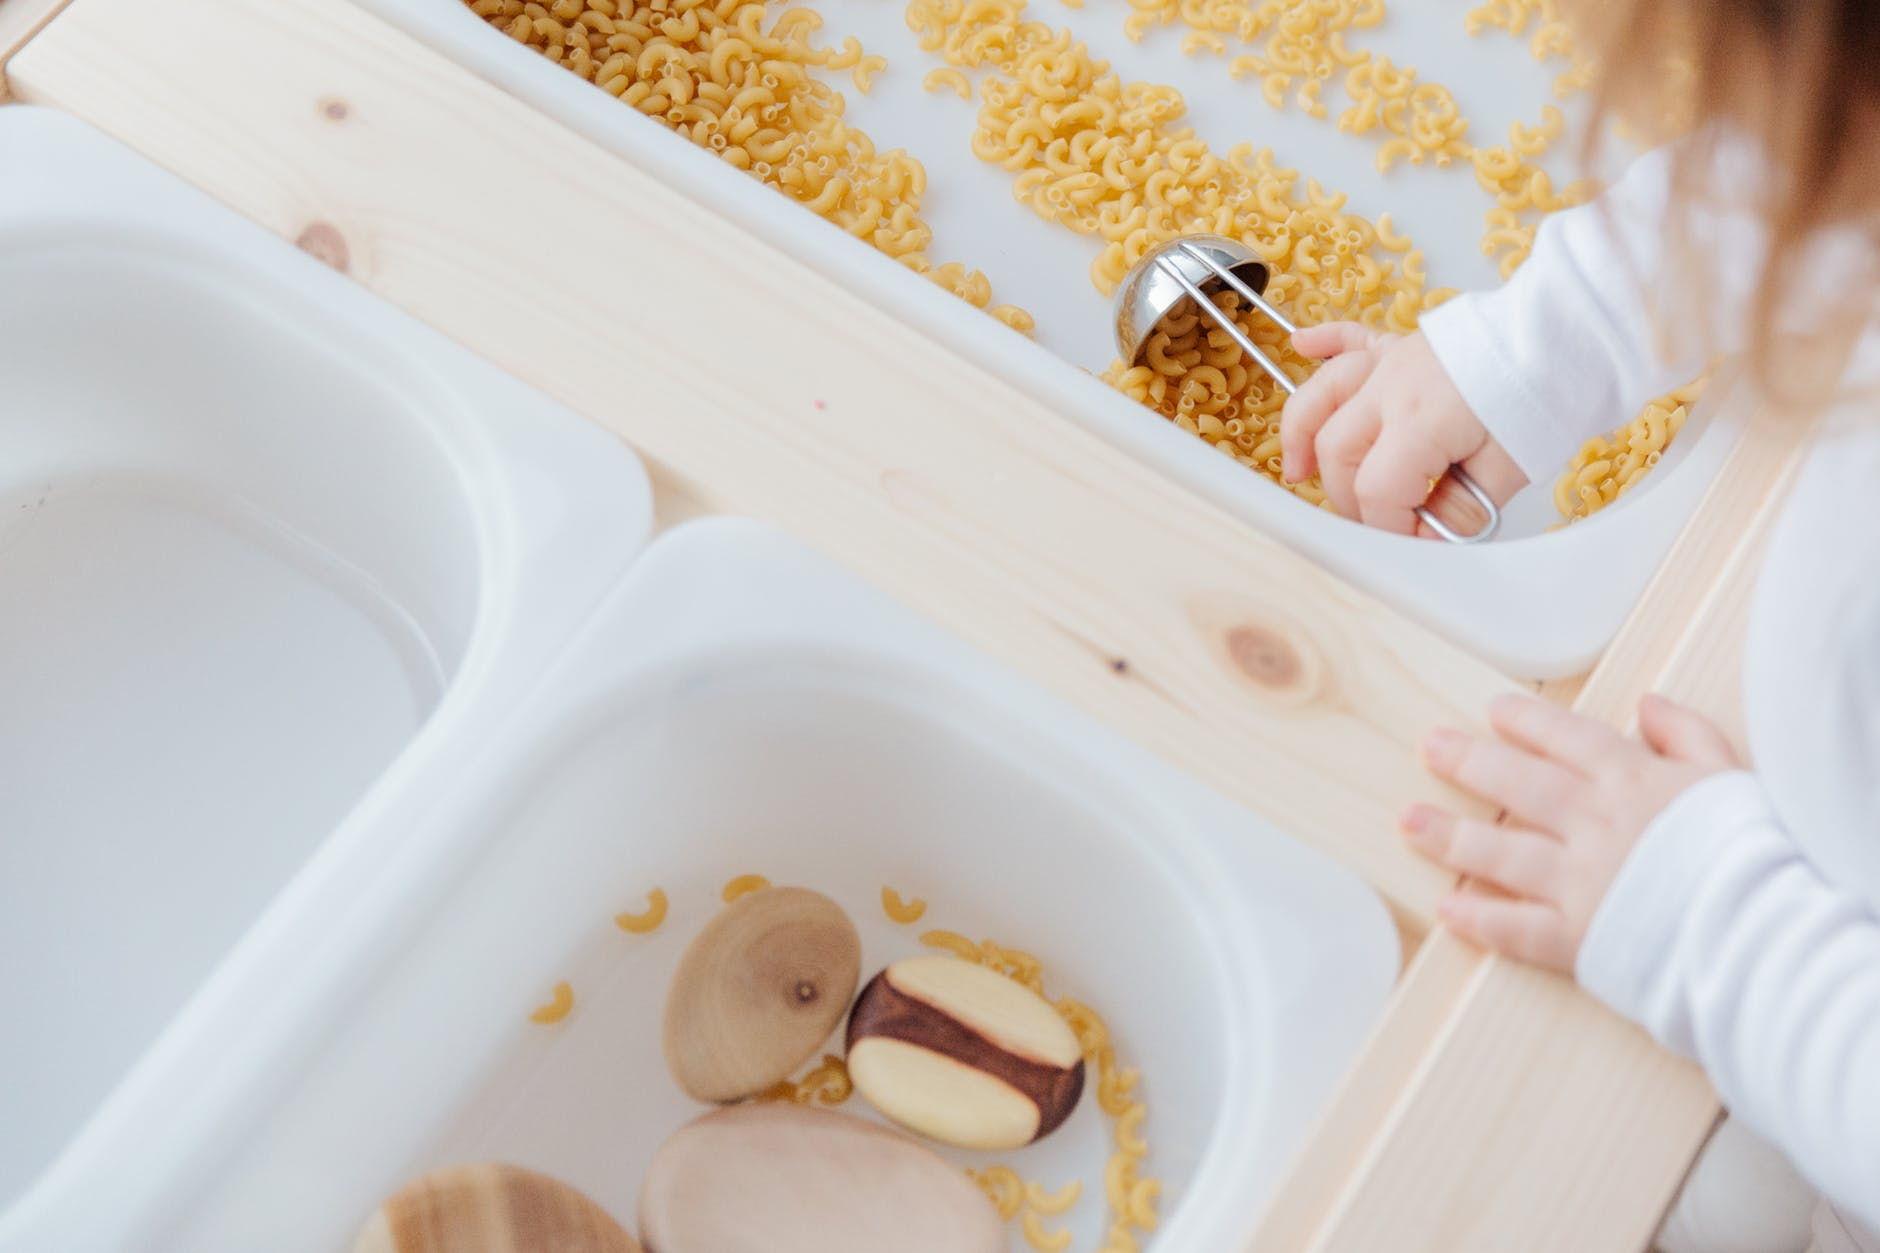 little girl collect raw pasta with metal spoon in plastic container